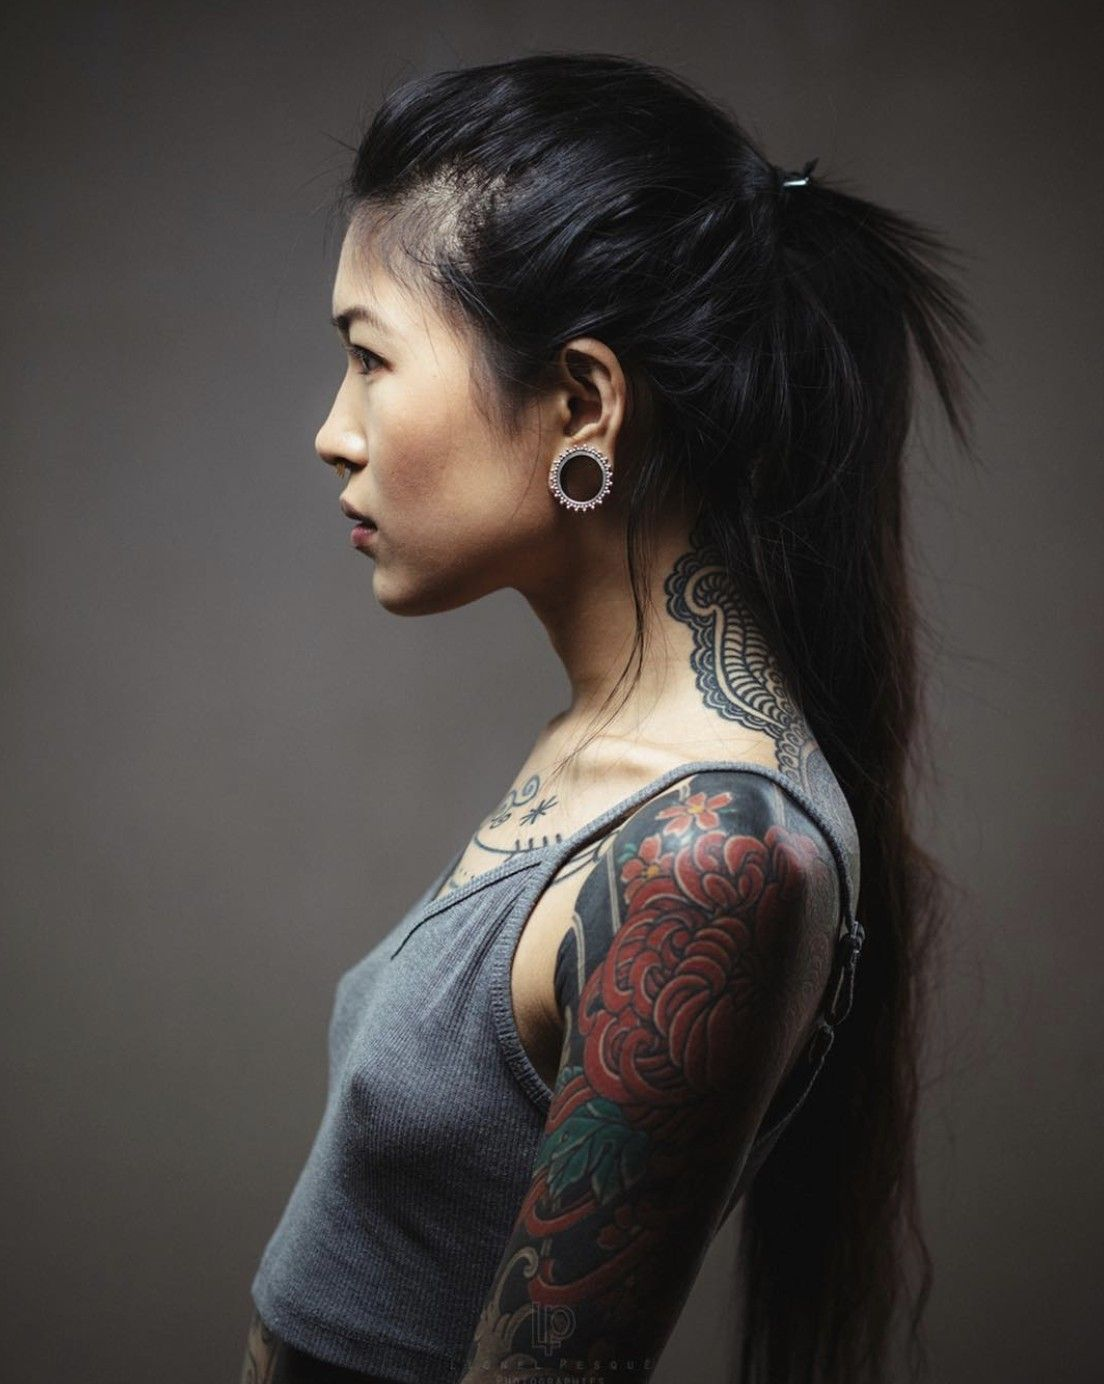 Japanese Gang Yakuza Full Body Tattoo Meanings (264)